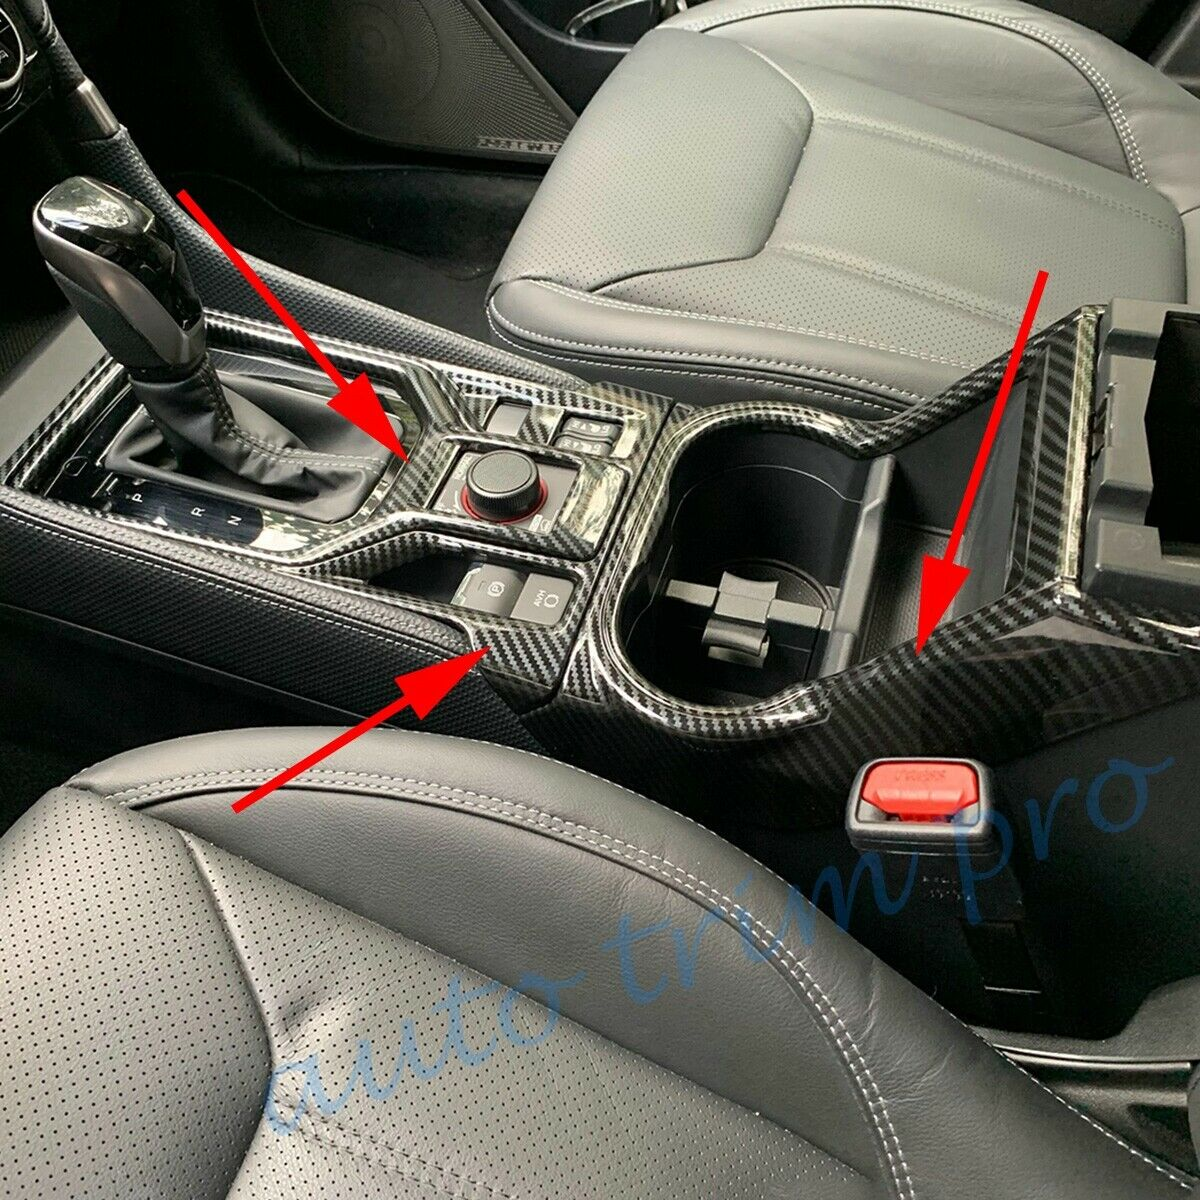 Stainless Dteel Seat Water Cup Holder Frame Trim For BMW X5 G05 40i 2019